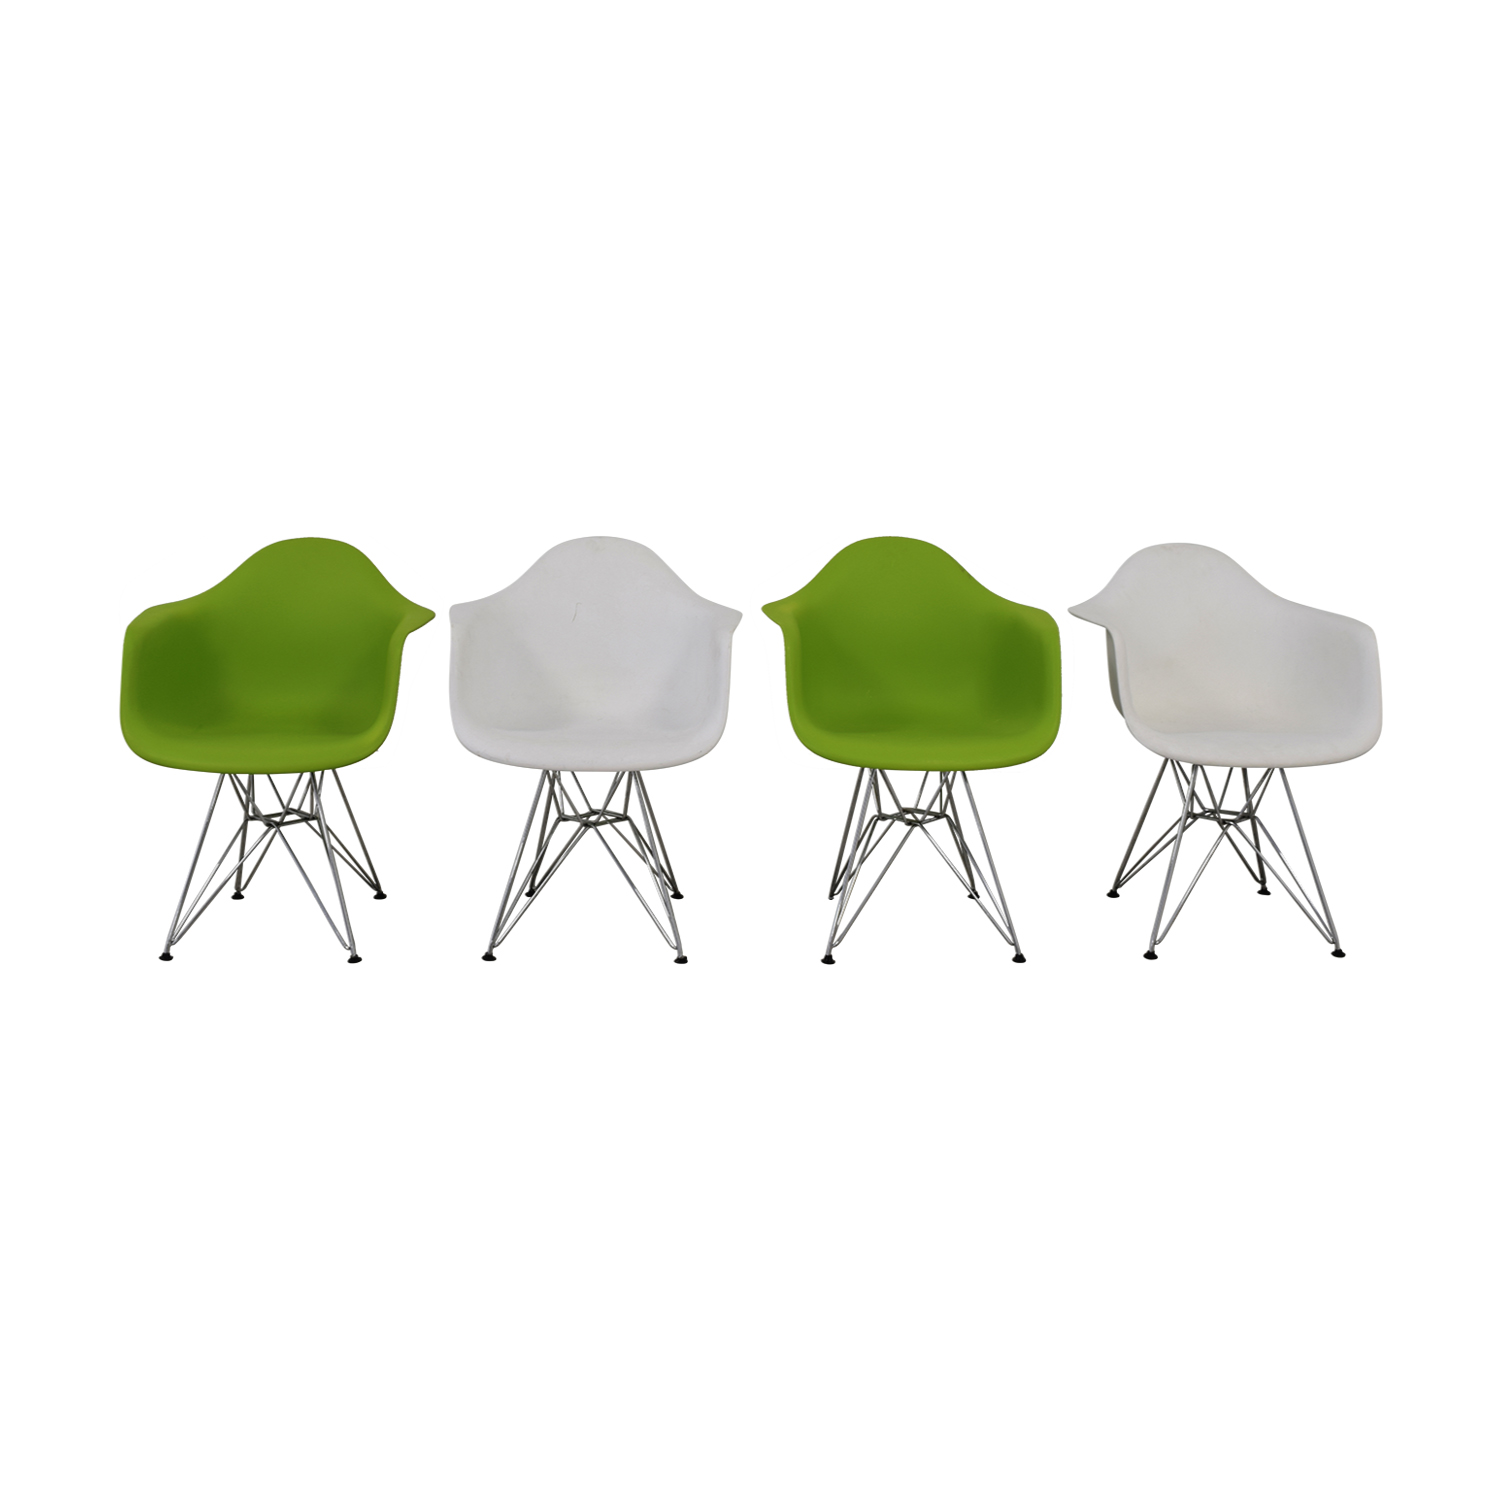 Replica Eames Eiffel Style  Green and White Chairs nyc